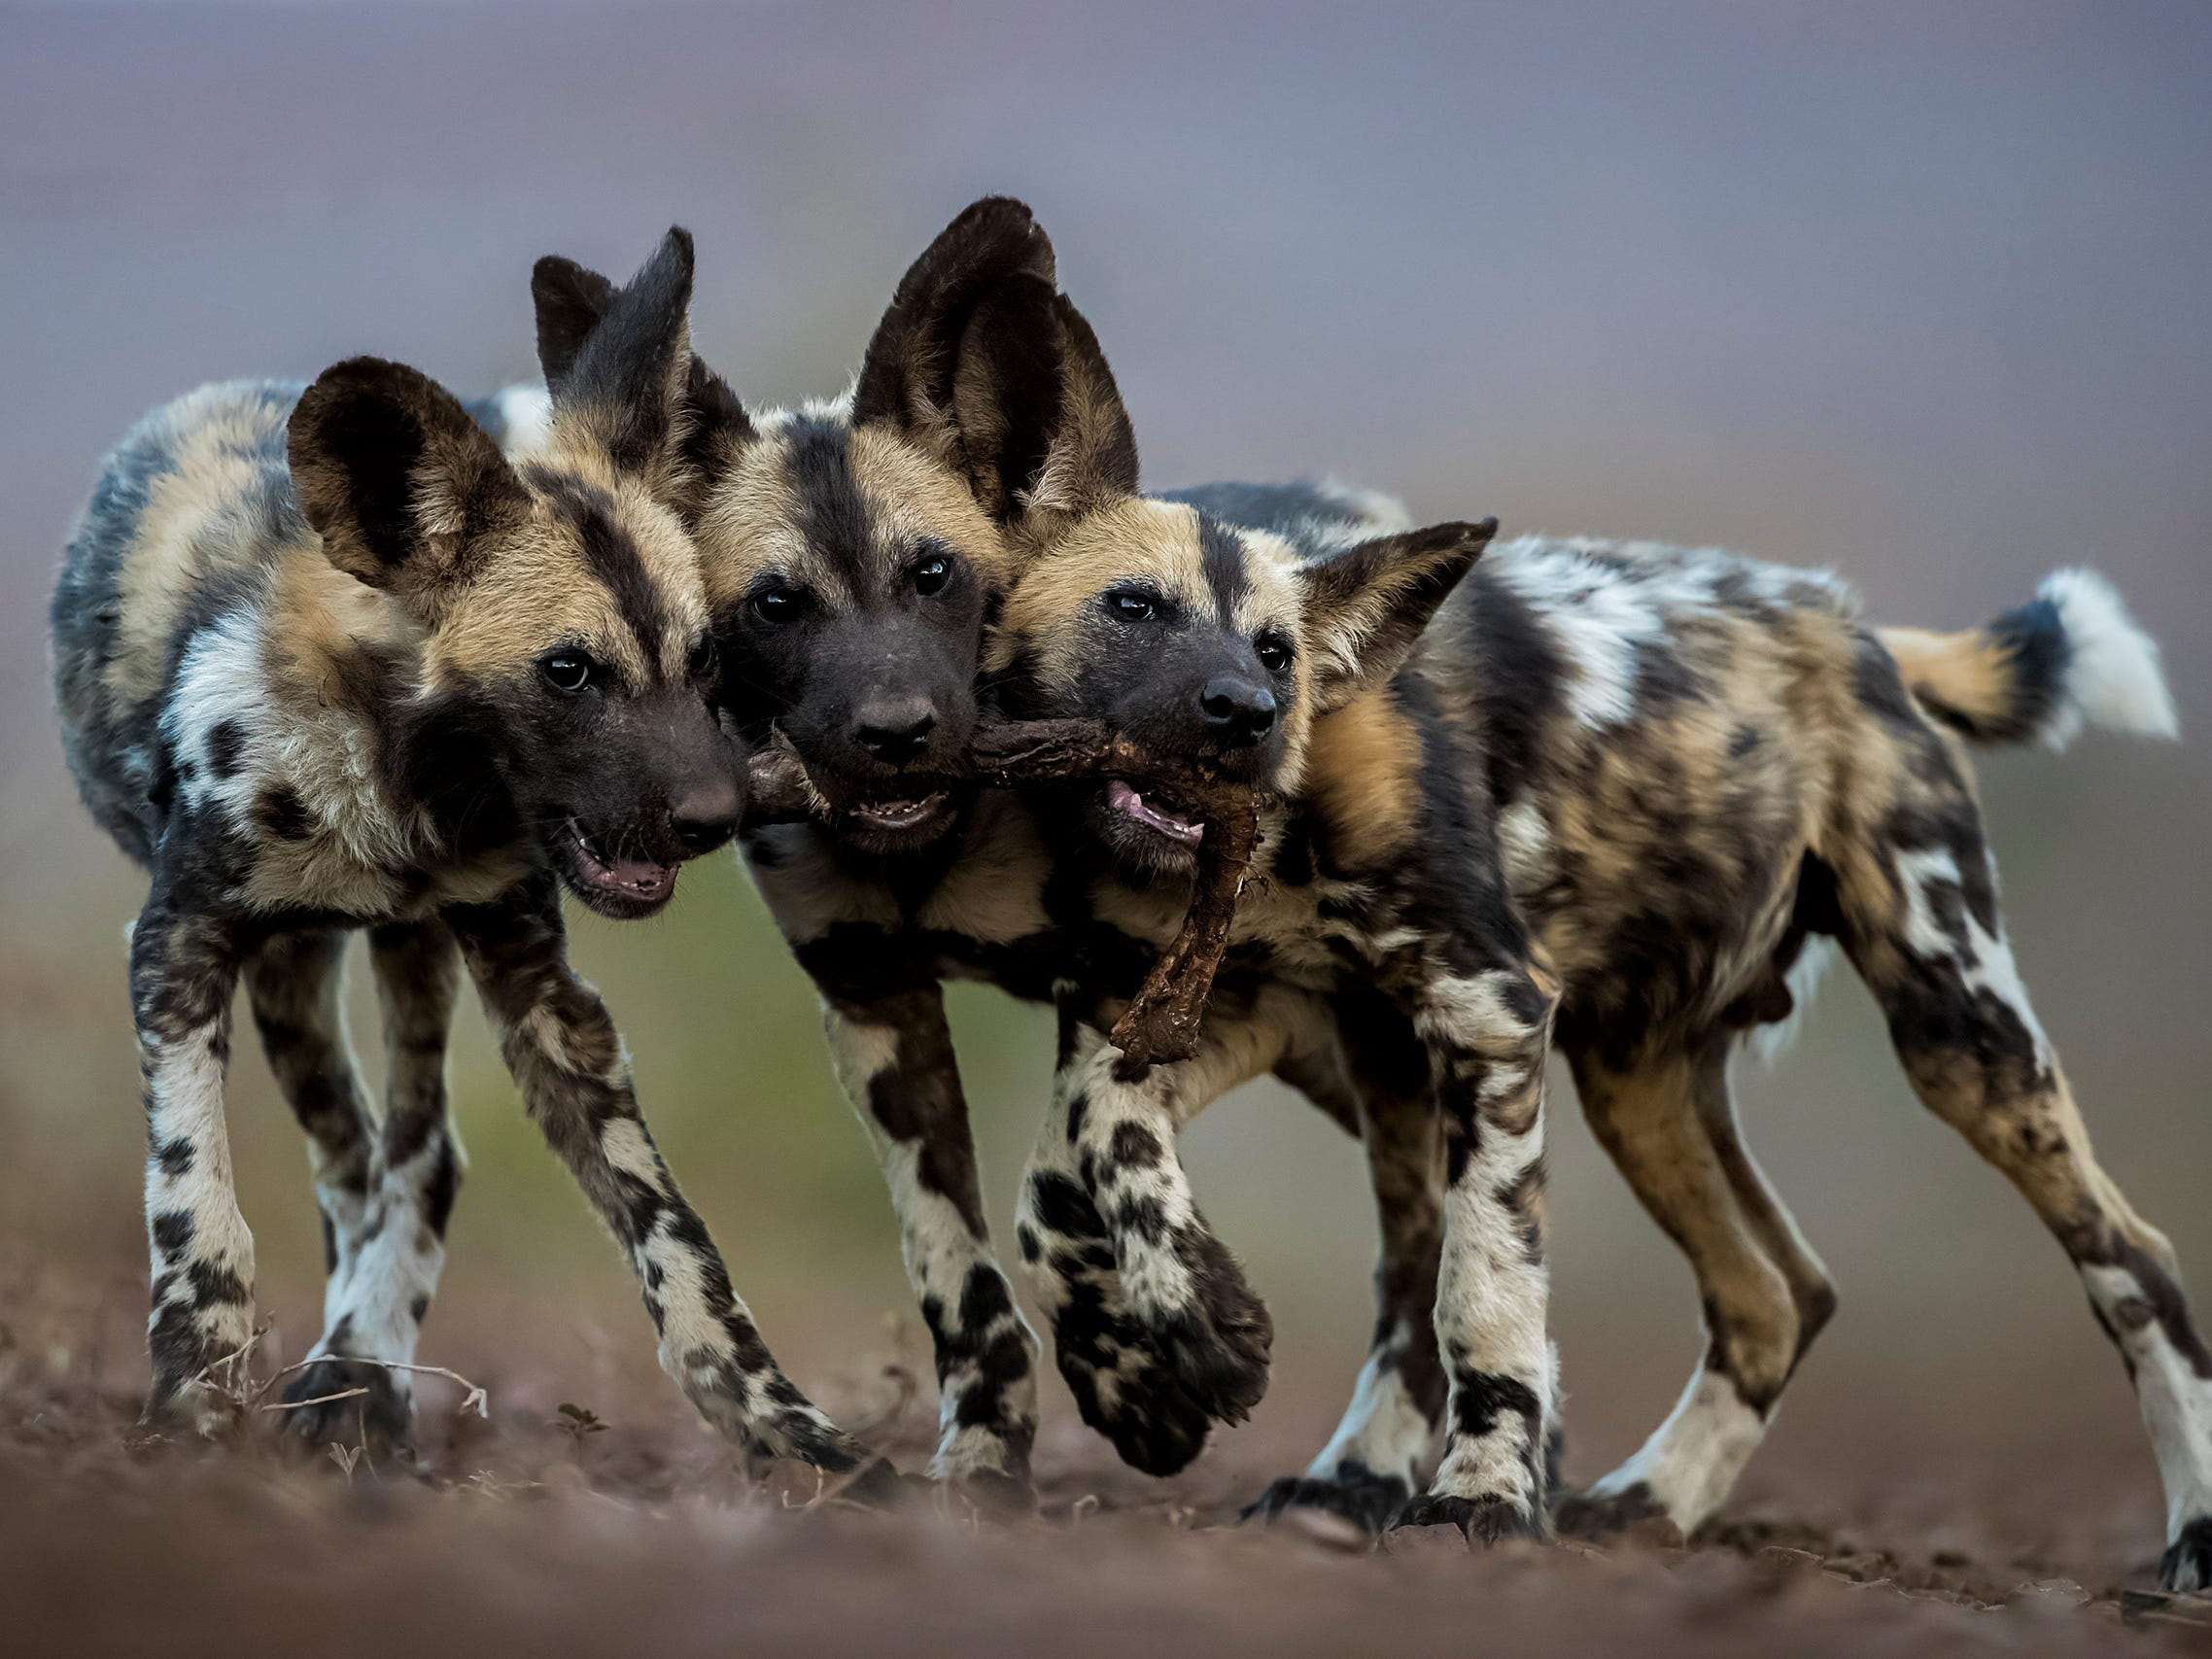 """Bence Mate's photo """"One Toy, Three Dogs"""" was named Highly Commended by the Wildlife Photographer of the Year LUMIX People's Choice Award. Bence photographed these wild African pups in Mkuze, South Africa, playing with the leg of an impala."""